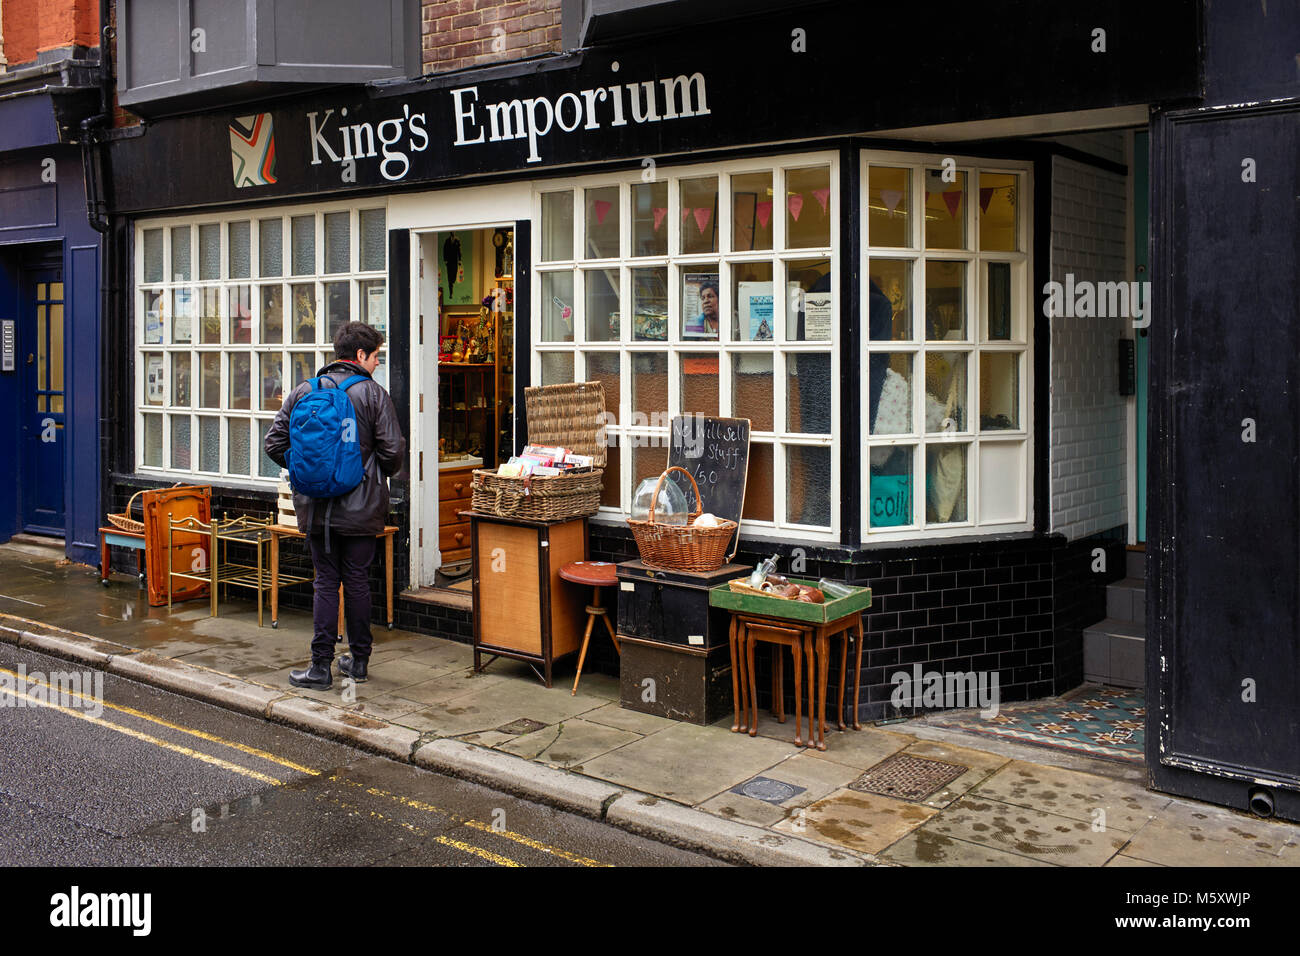 Kings Emporium secondhand shop in the creative quarter of Margate - Stock Image